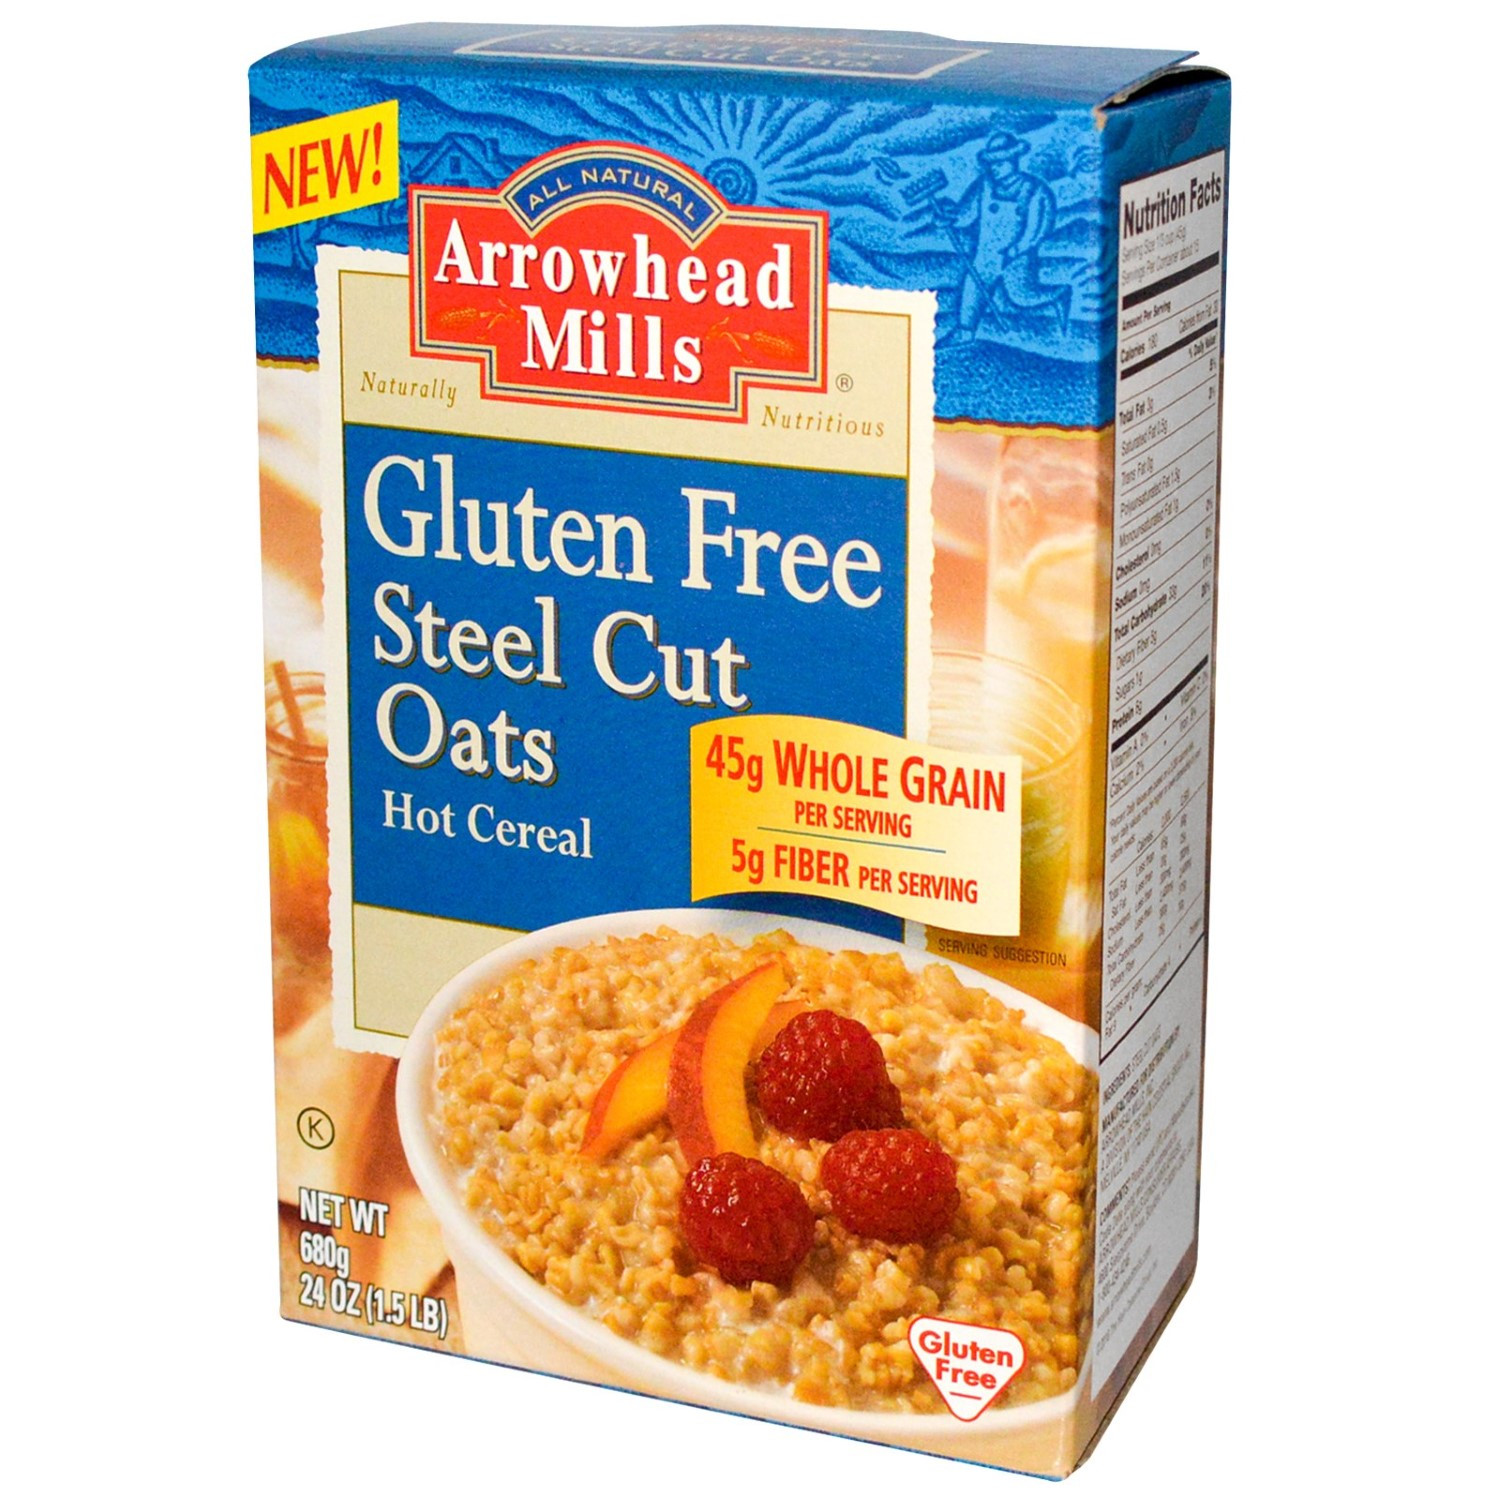 Organic Gluten Free Steel Cut Oats  Arrowhead Mills All Natural Gluten Free Steel Cut Oats Hot